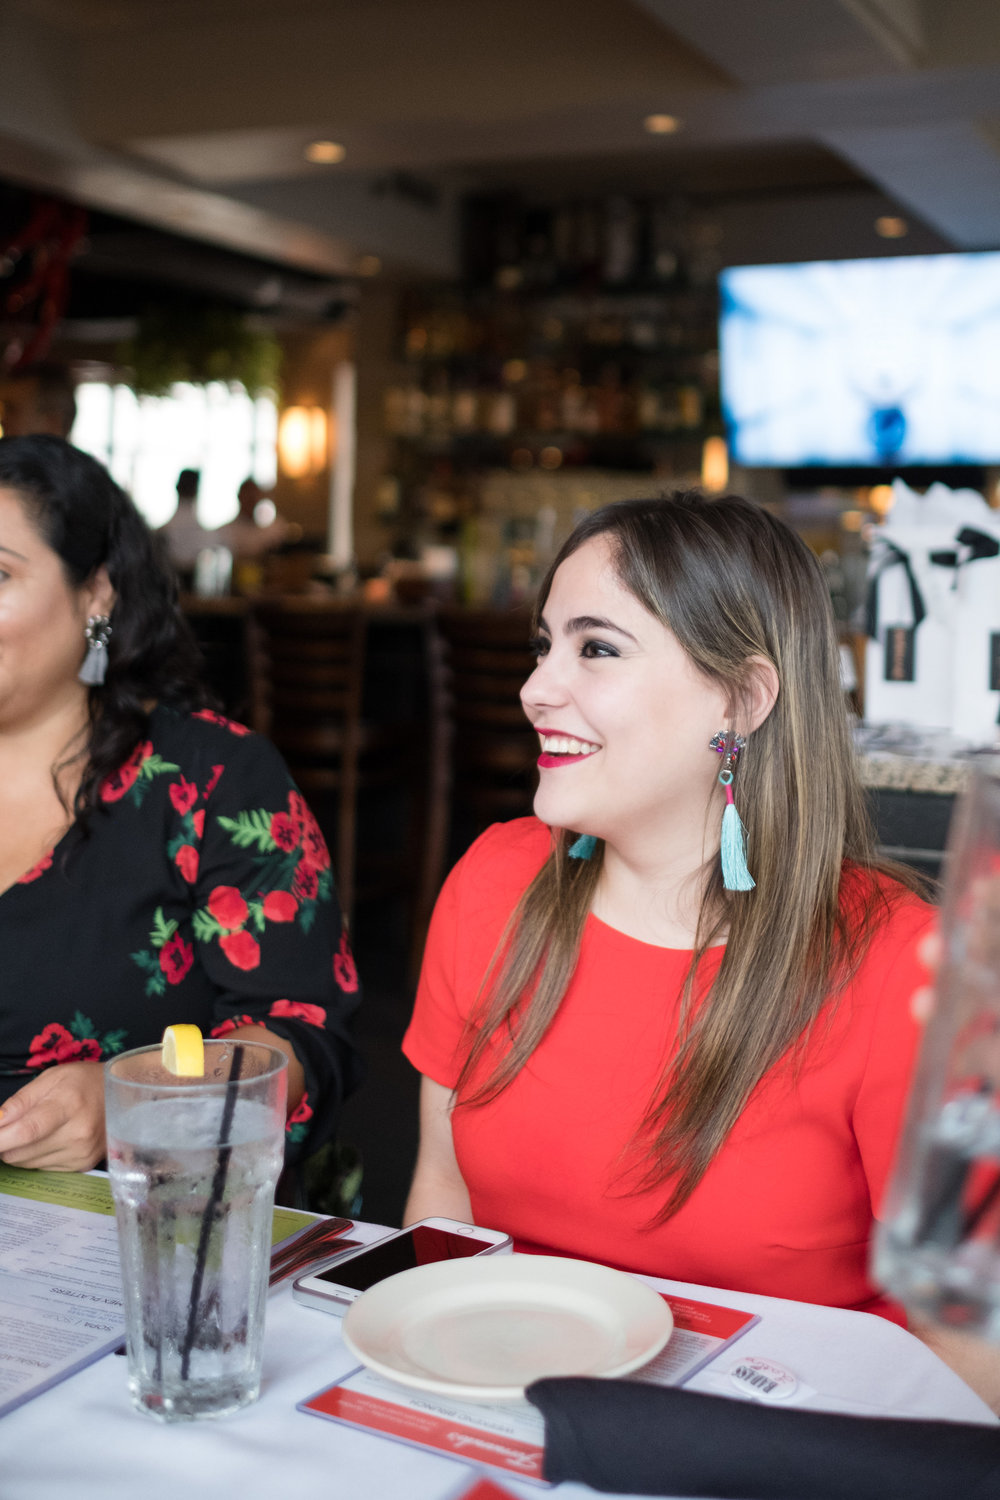 LatinaBloggerBrunch_0059.jpg